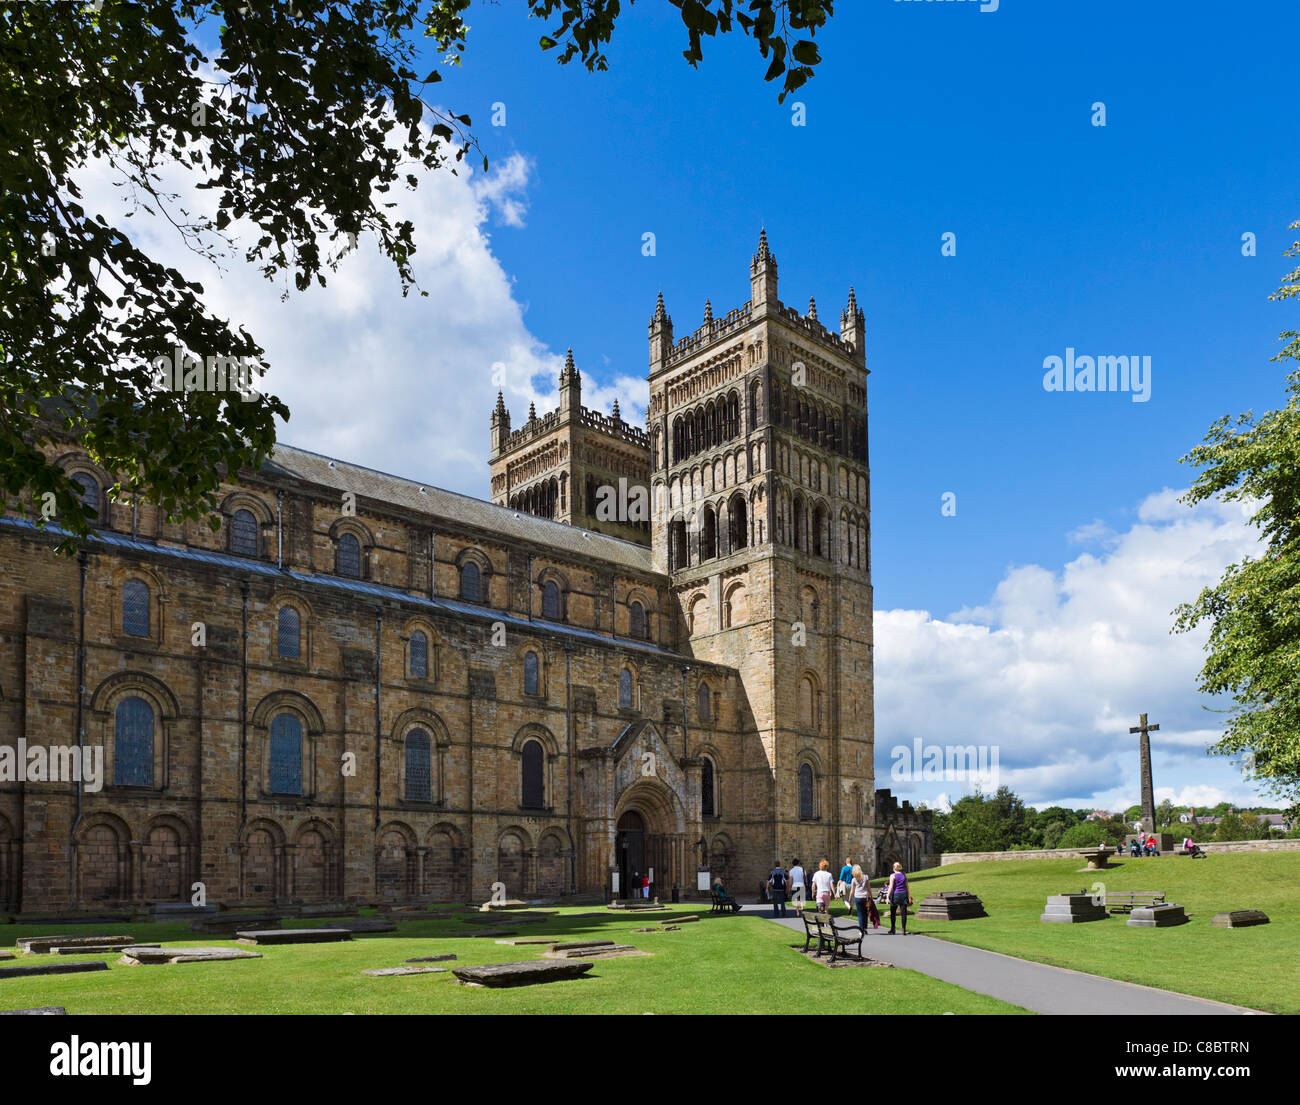 Durham Cathedral from Palace Green, County Durham, North East England, UK - Stock Image